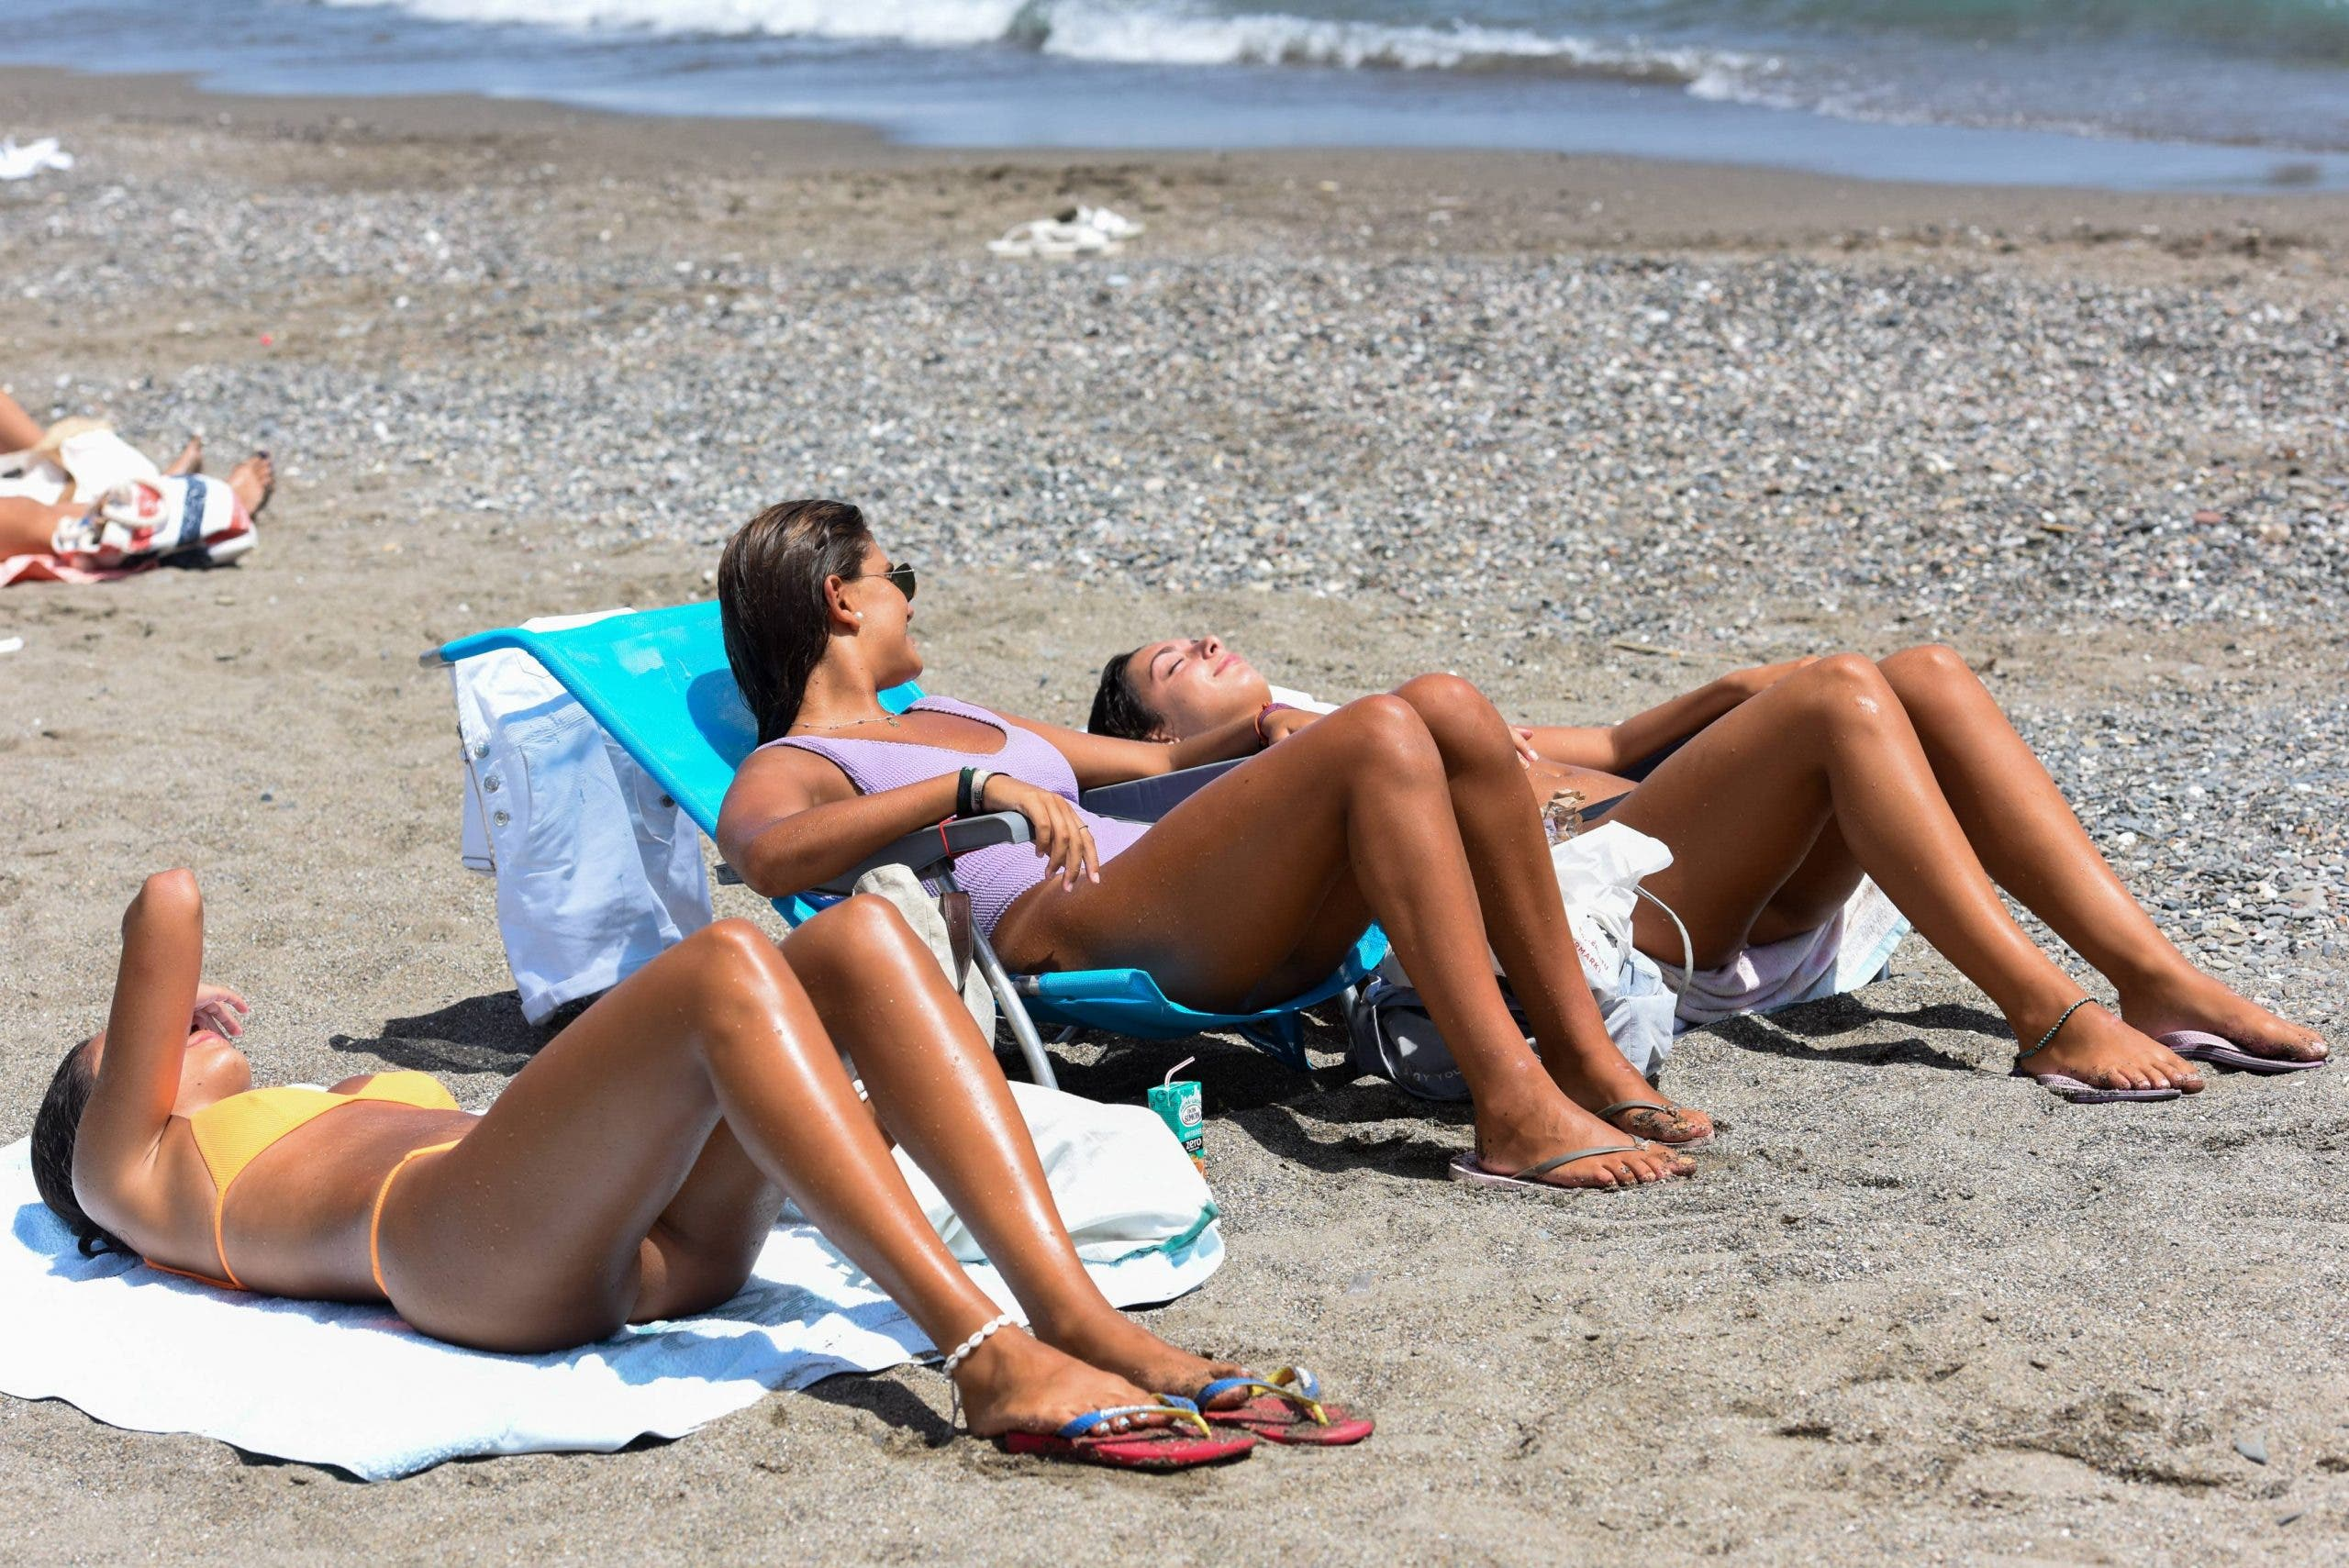 MASKED BACKLASH as Spain's Health Minister is forced to reconsider beach mask plans